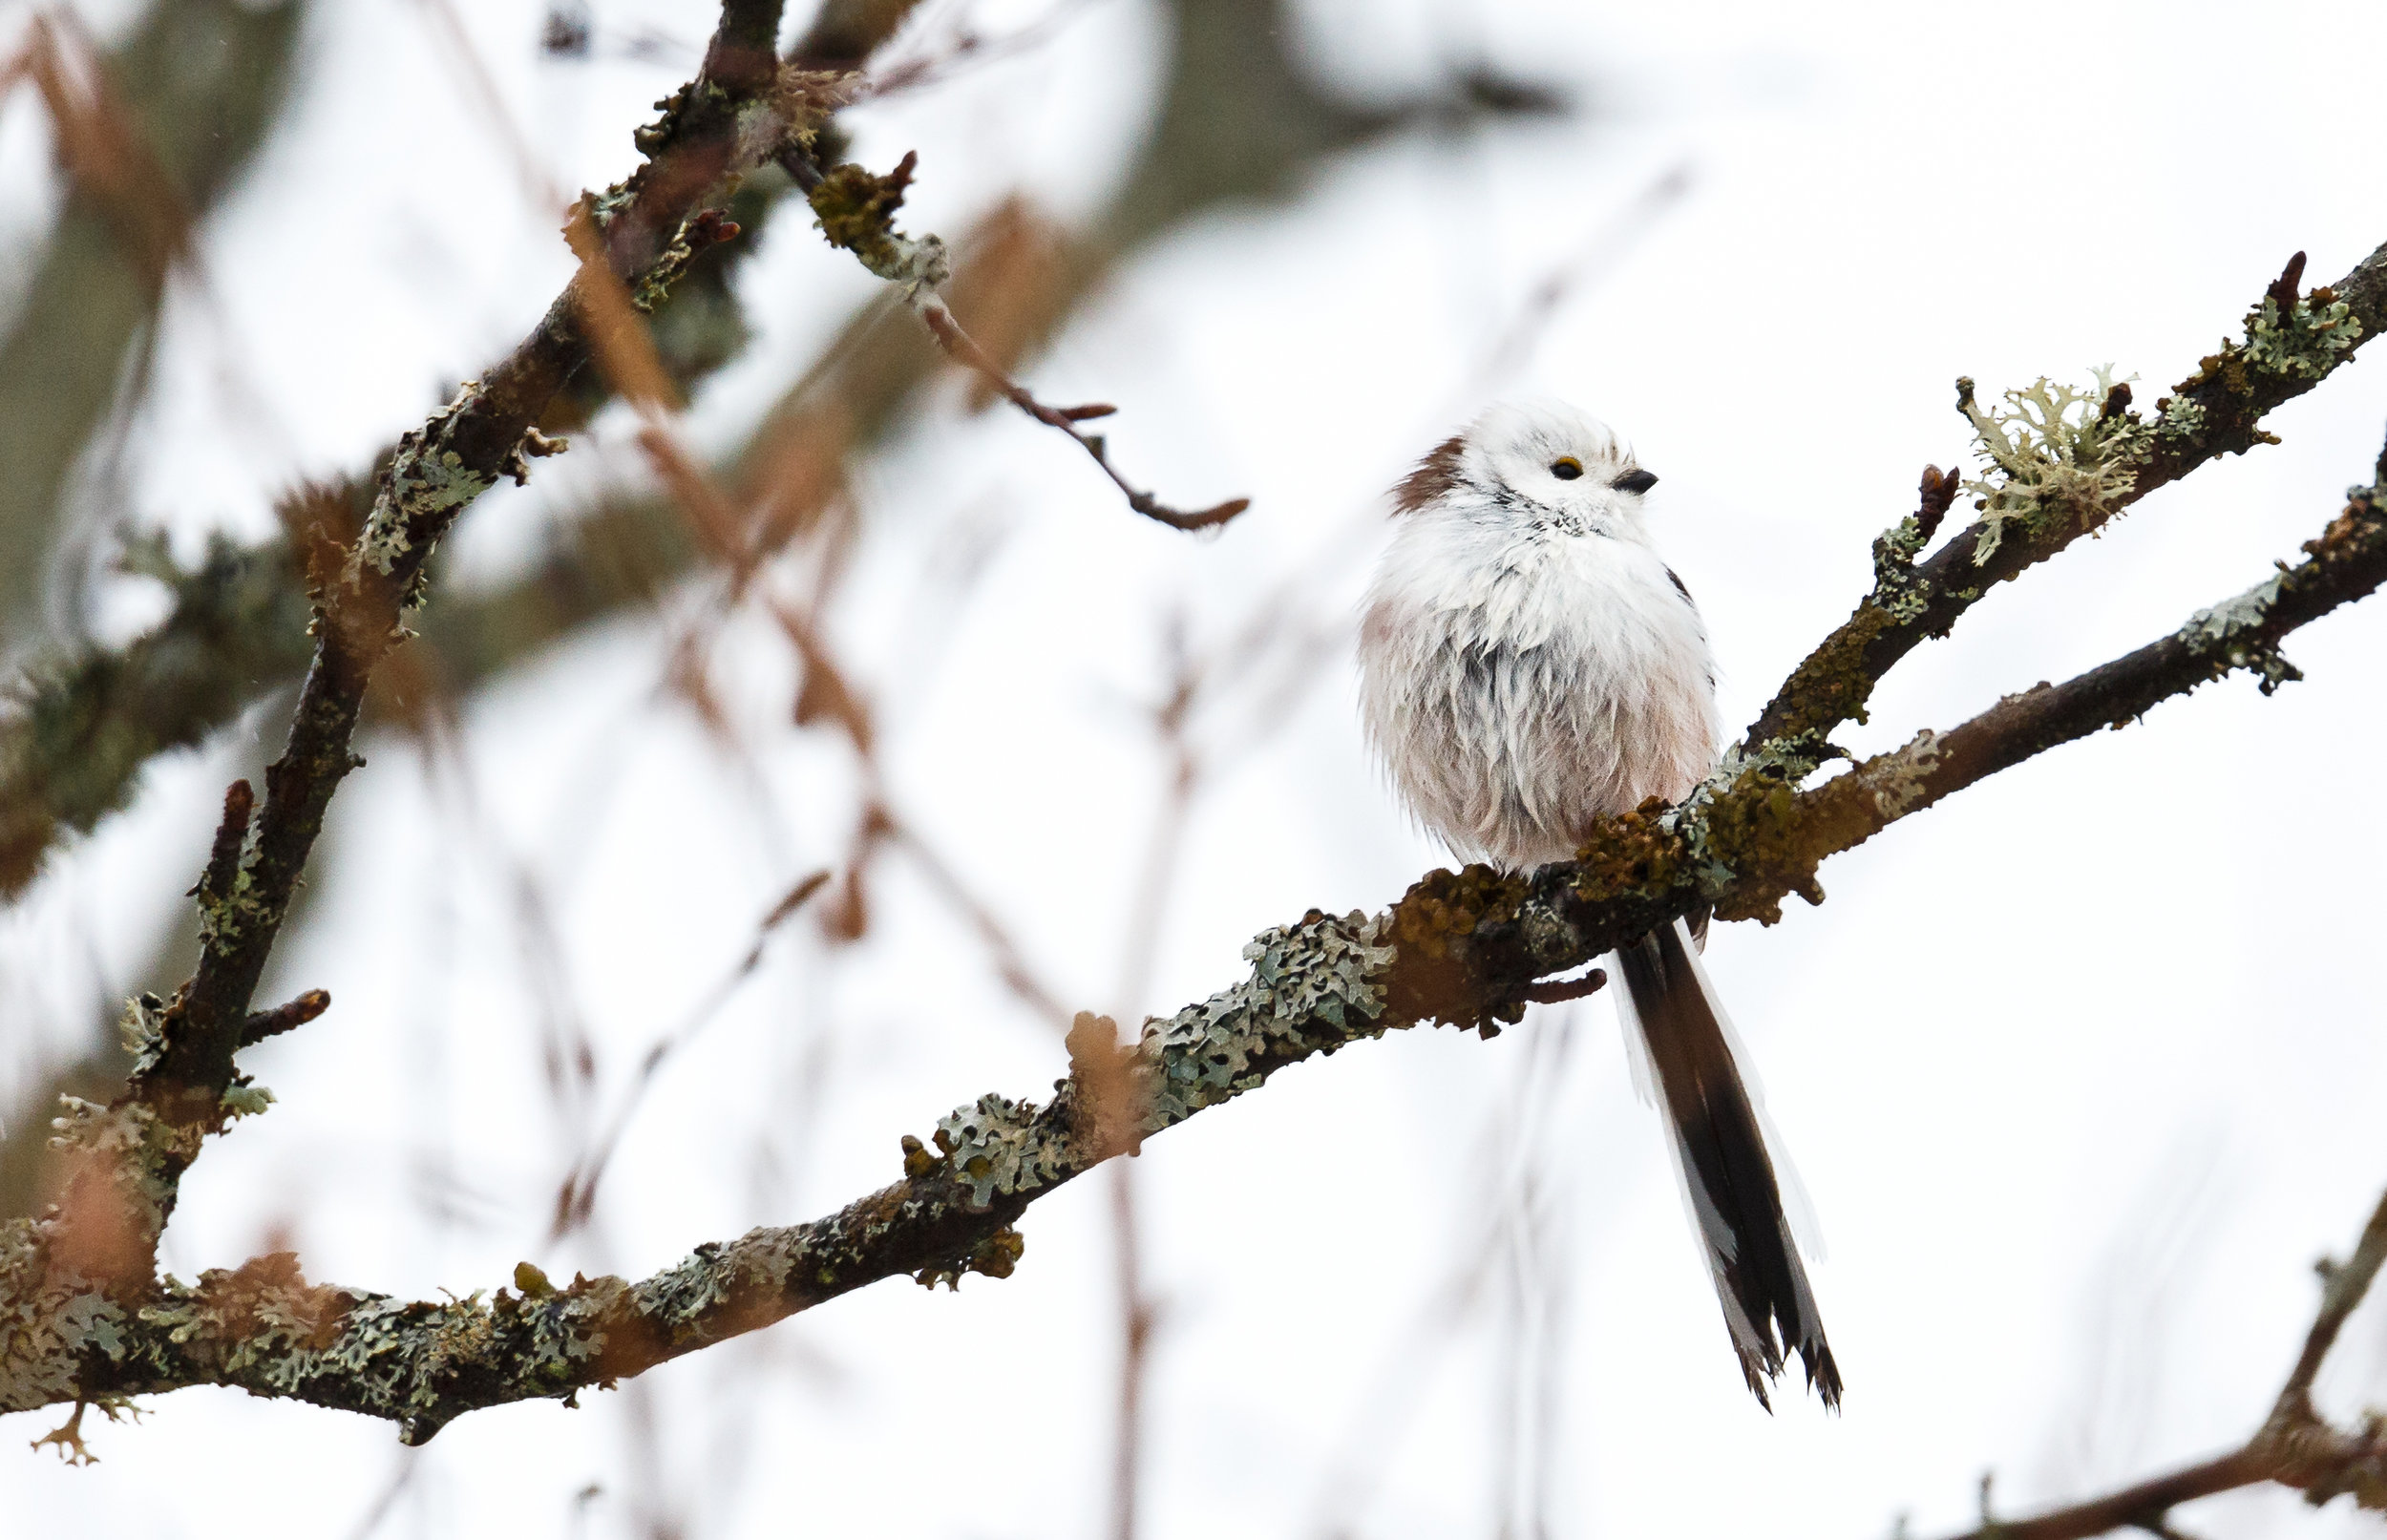 A sodden, but rather chirpy Long-tailed Tit